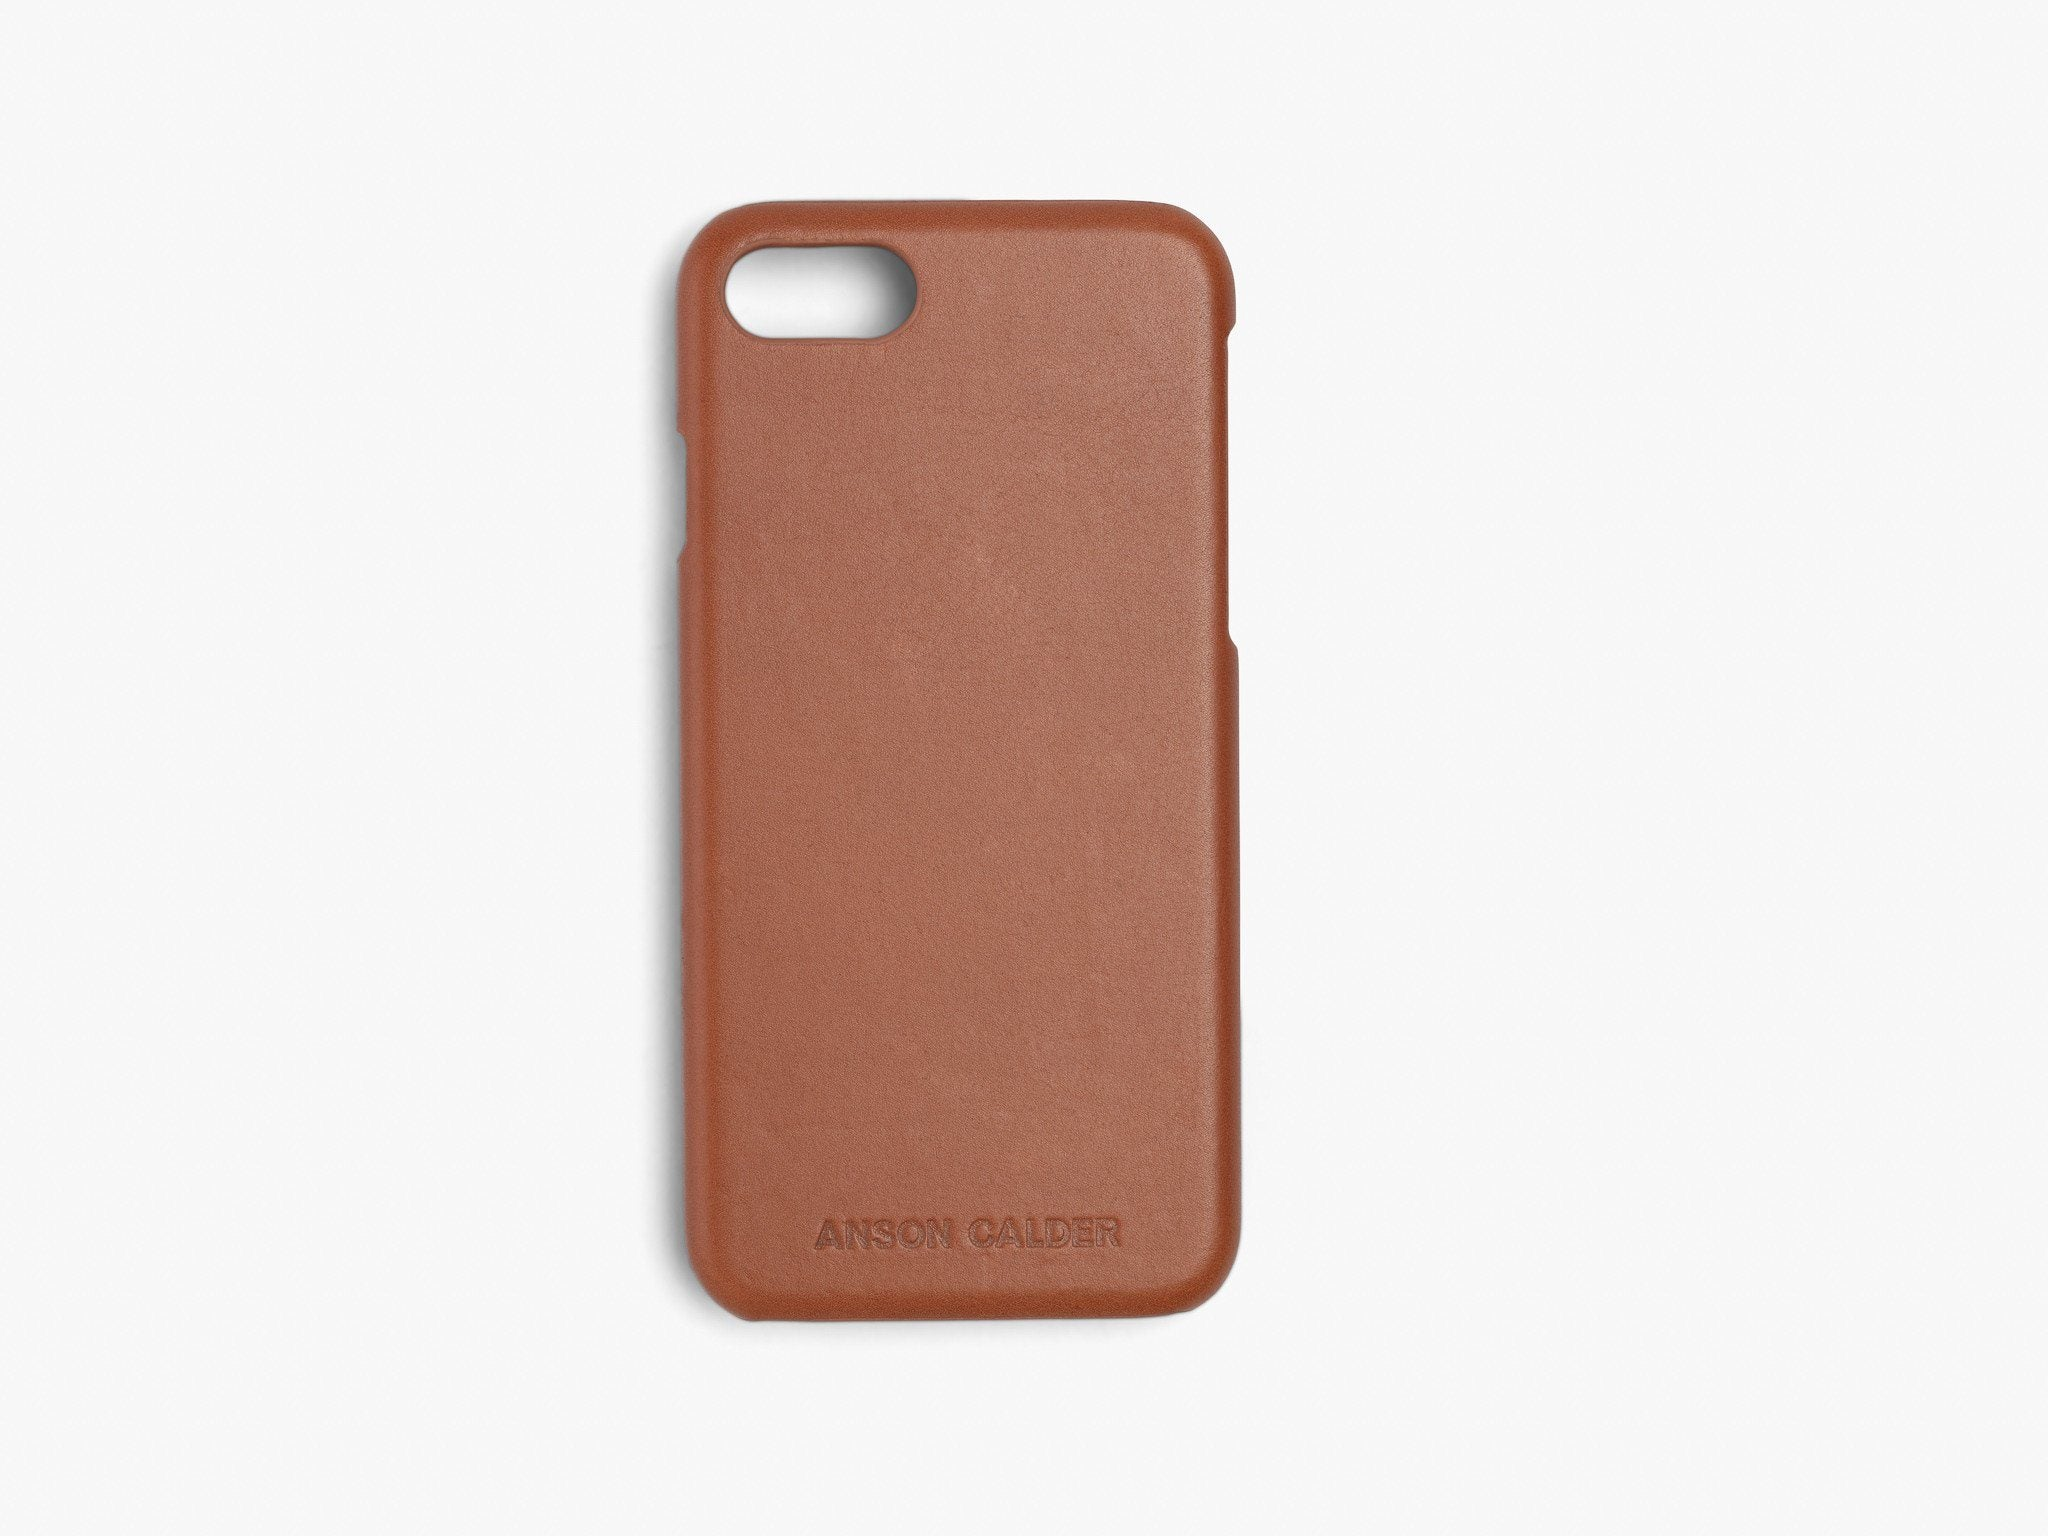 CALFSKIN iPHONE CASE CASES ANSON CALDER iPhone 6 / 6S !iphone7  _Cognac